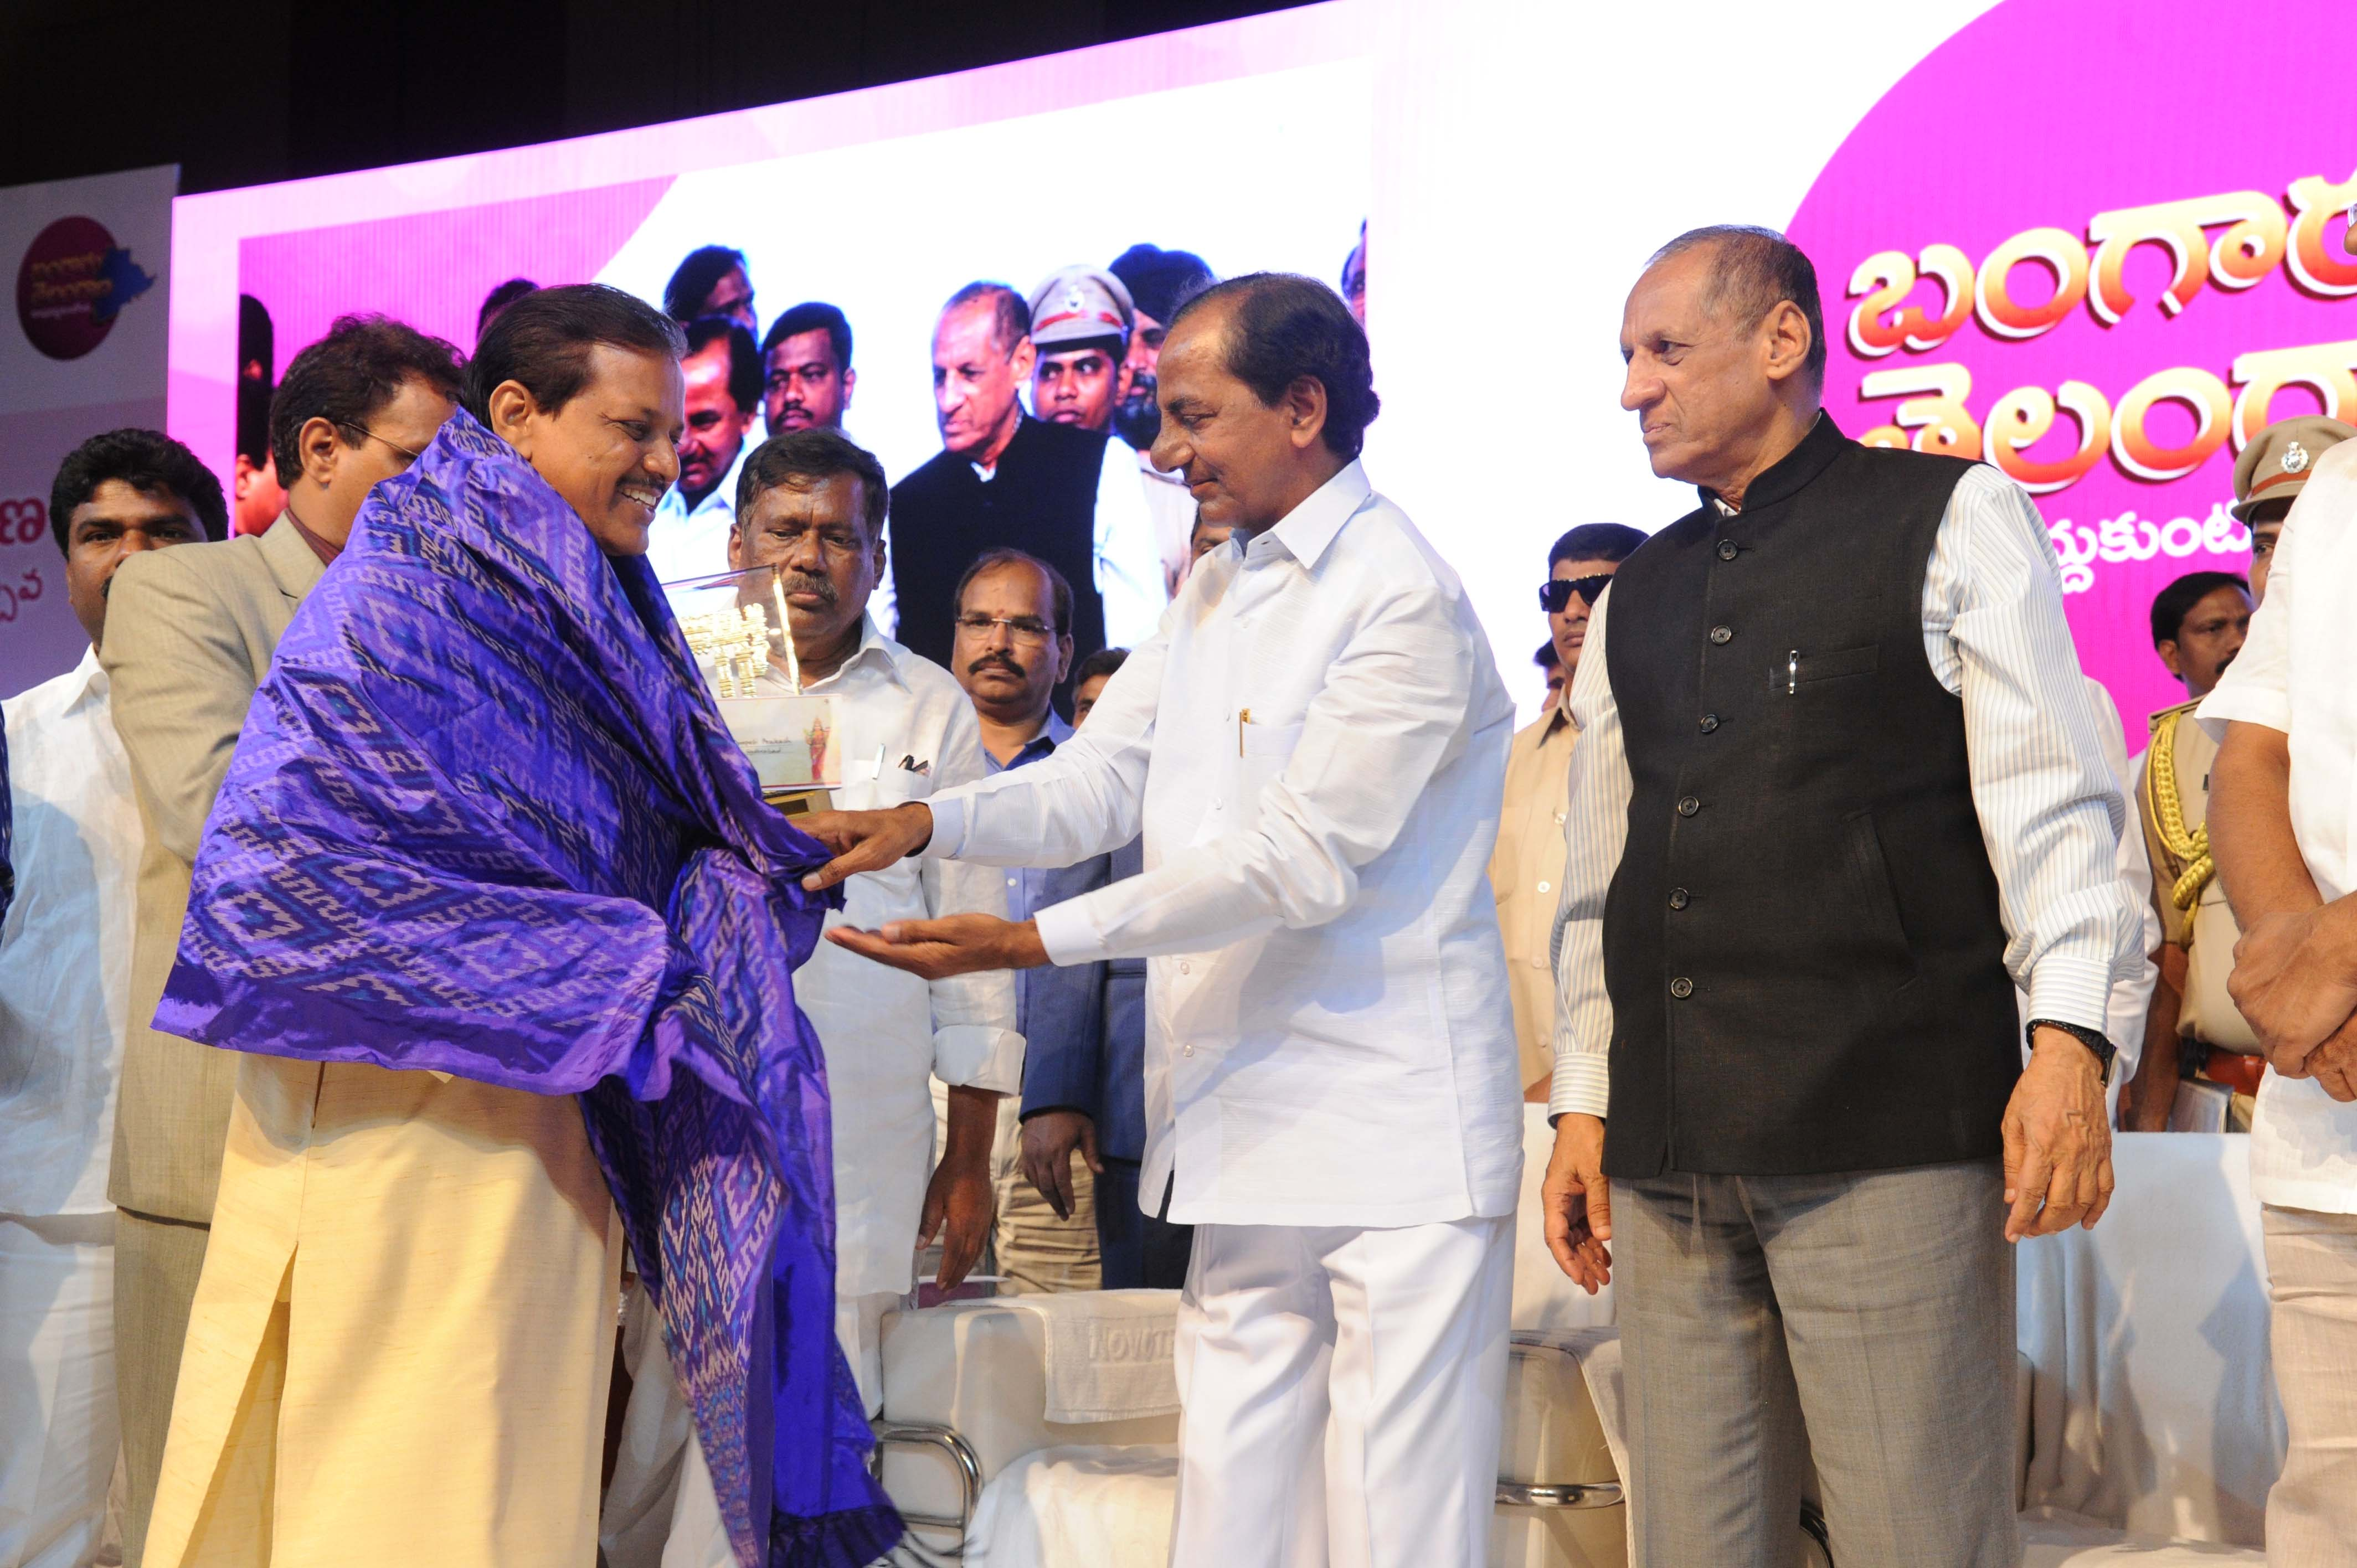 Governor ESL. Narasimhan and TS Chief Minister K. Chandrashekhar Rao at the Special meeting of Telangana State Formation Day Celebrations at HICC, Madhapur on 02-06-2016